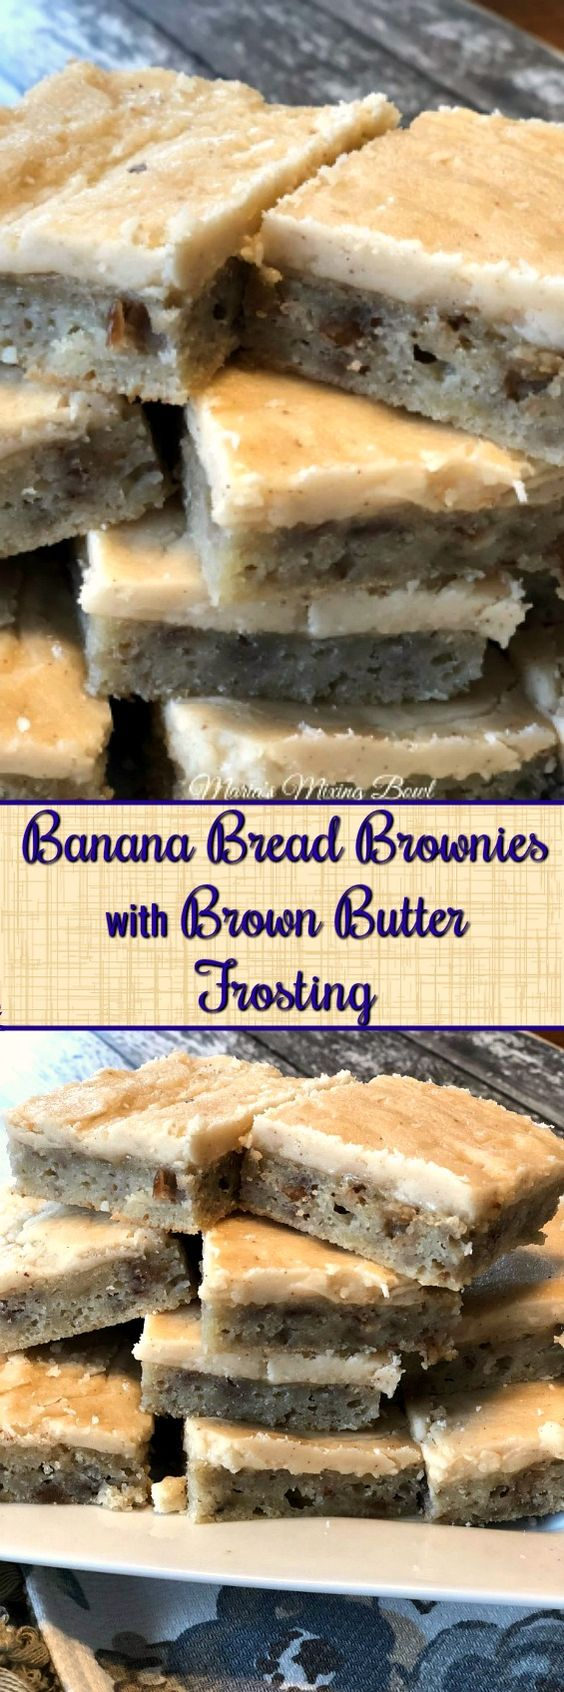 Banana Bread Brownies with Brown Butter Frosting -  If you like bananas in any way, shape, or form, this recipe is for you. A moist, almost fudgy, cake topped with a brown butter frosting.